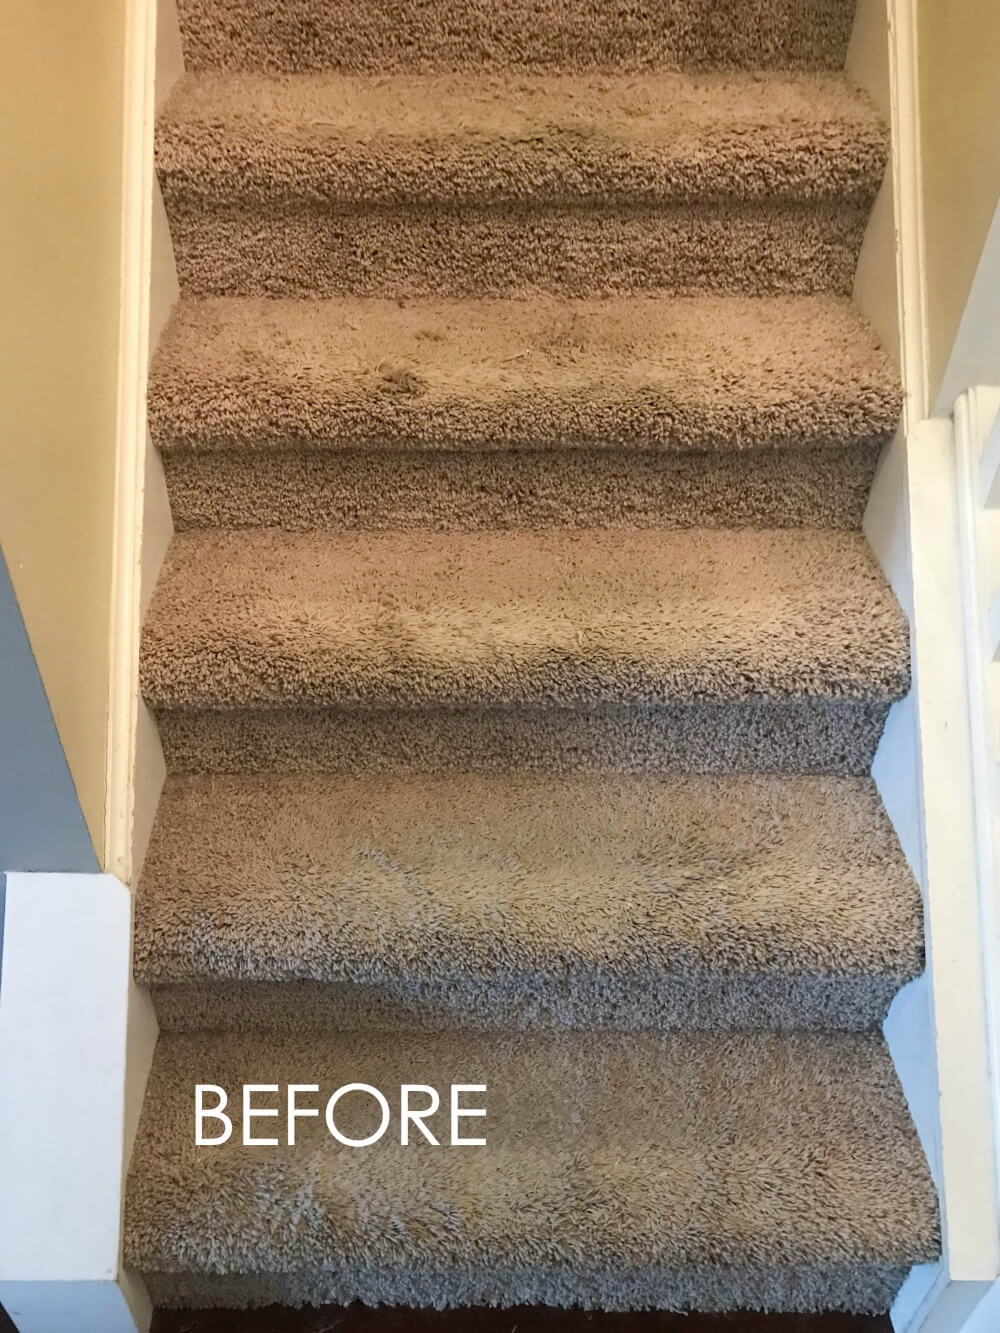 How To Replace Carpet With An Inexpensive Stair Runner For Around 100 | Fixing Carpet On Stairs | Wood | Staircase | Runner | Stair Nosing | Install